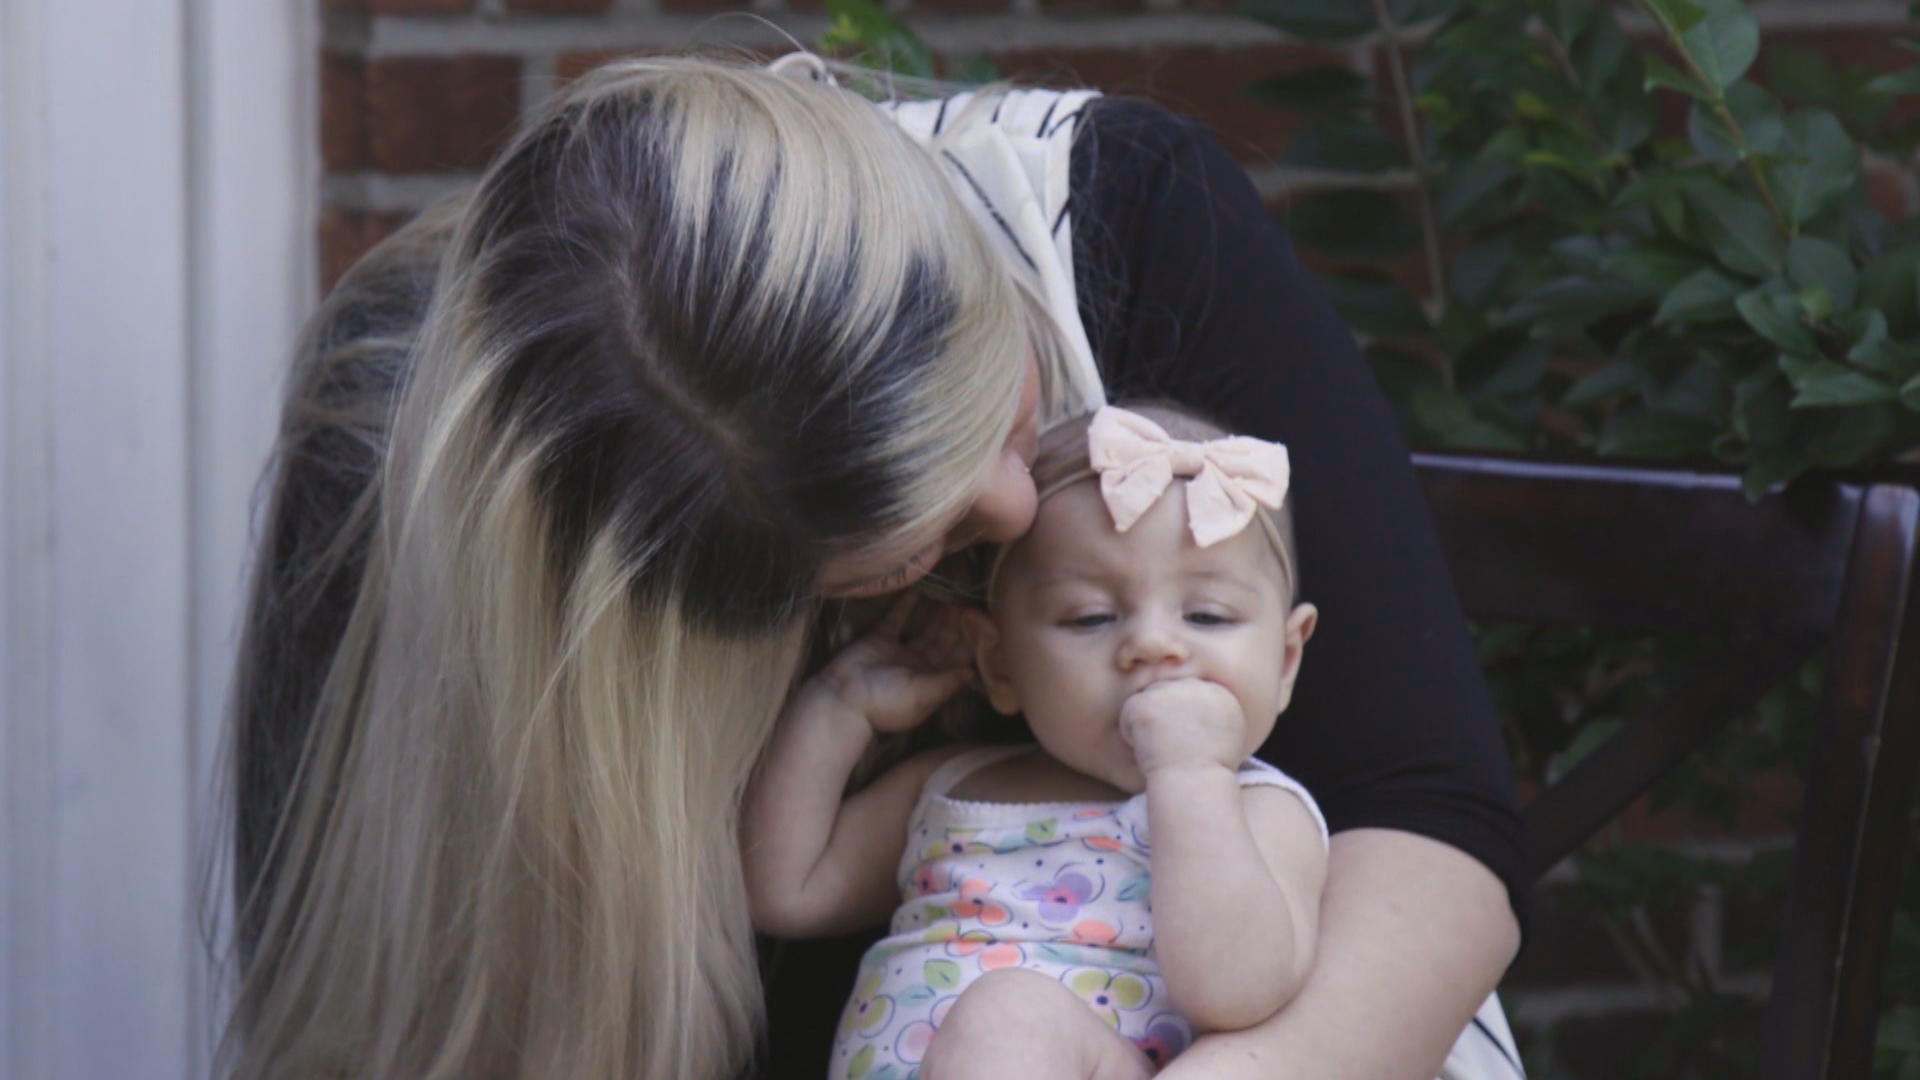 Michigan Mom Says 911 Refused To Send Help With 2 Month Old